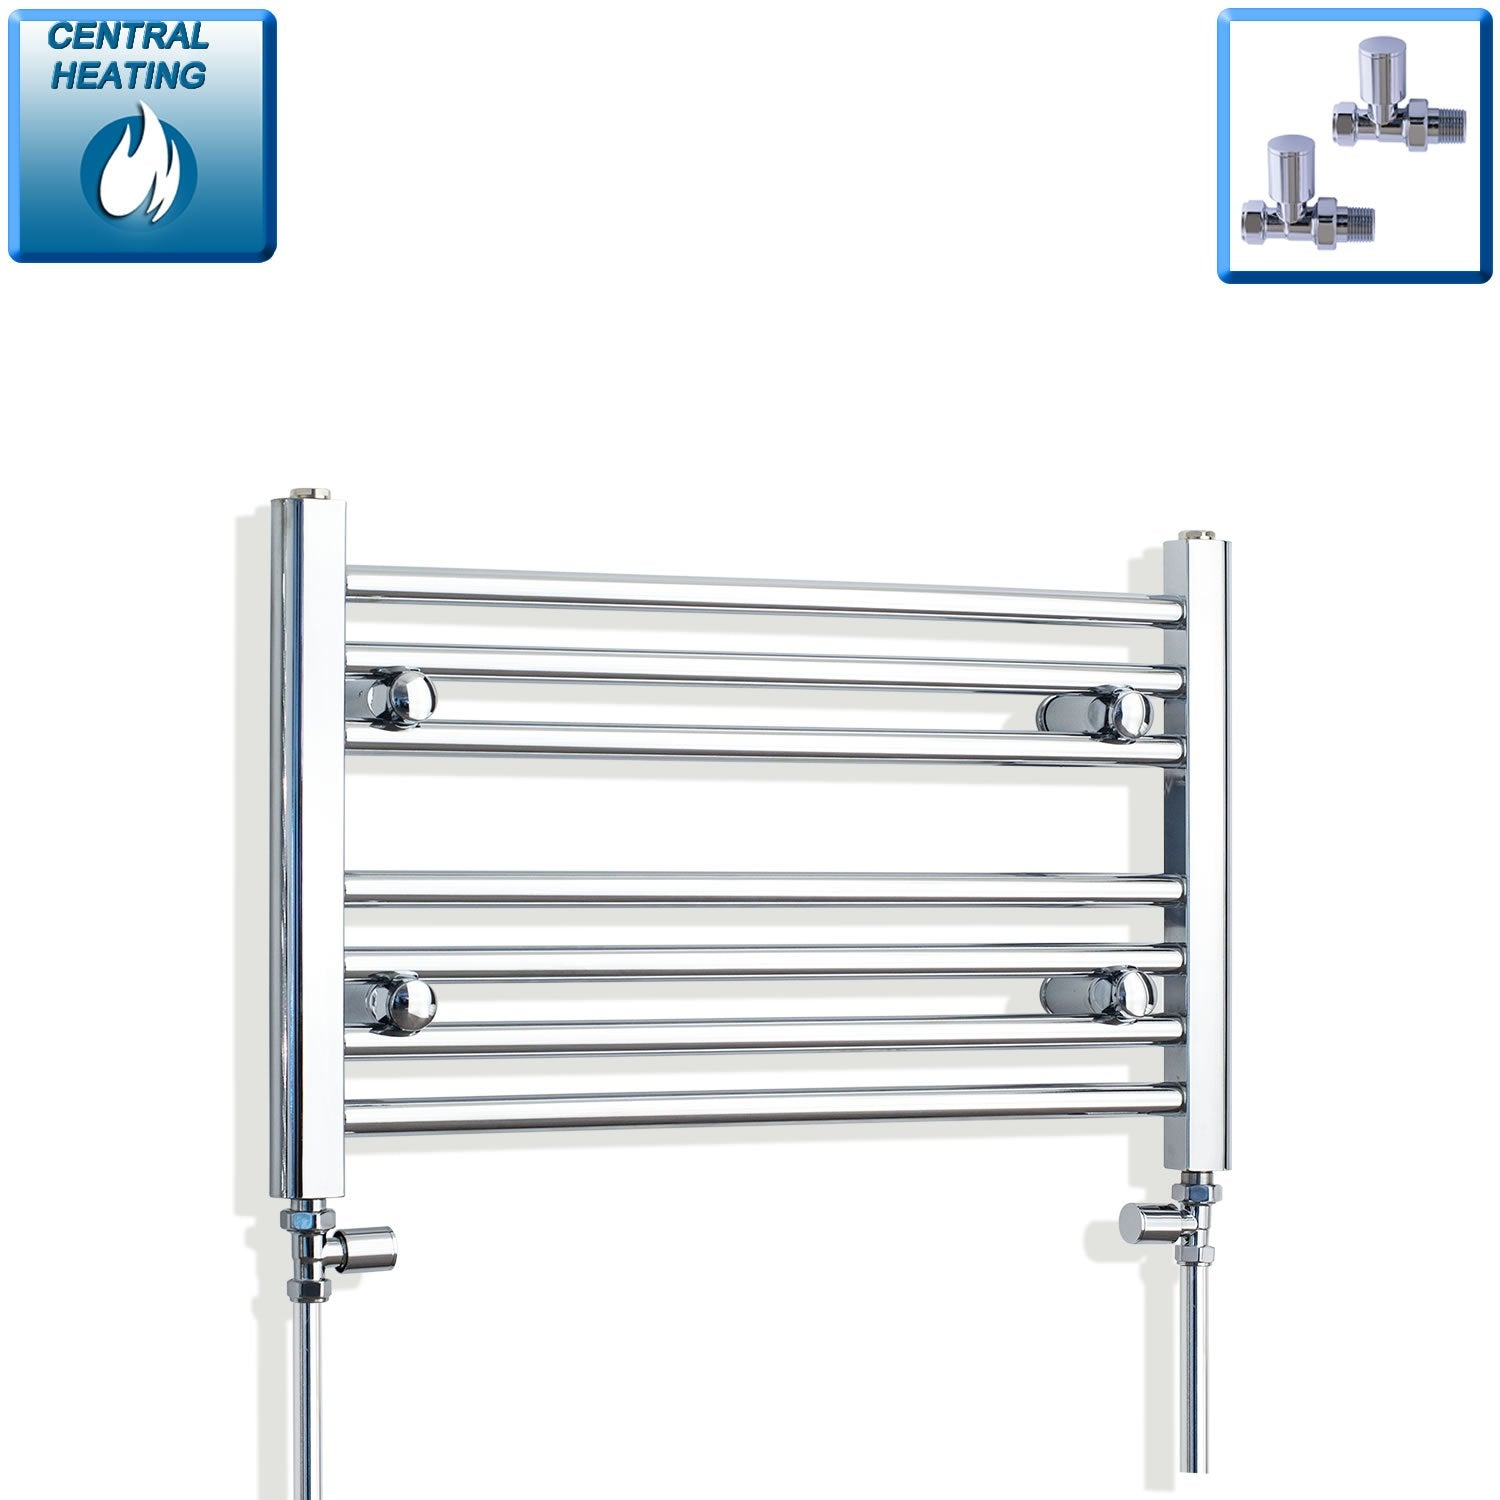 650mm Wide 400mm High Flat Chrome Heated Towel Rail Radiator HTR,With Straight Valve